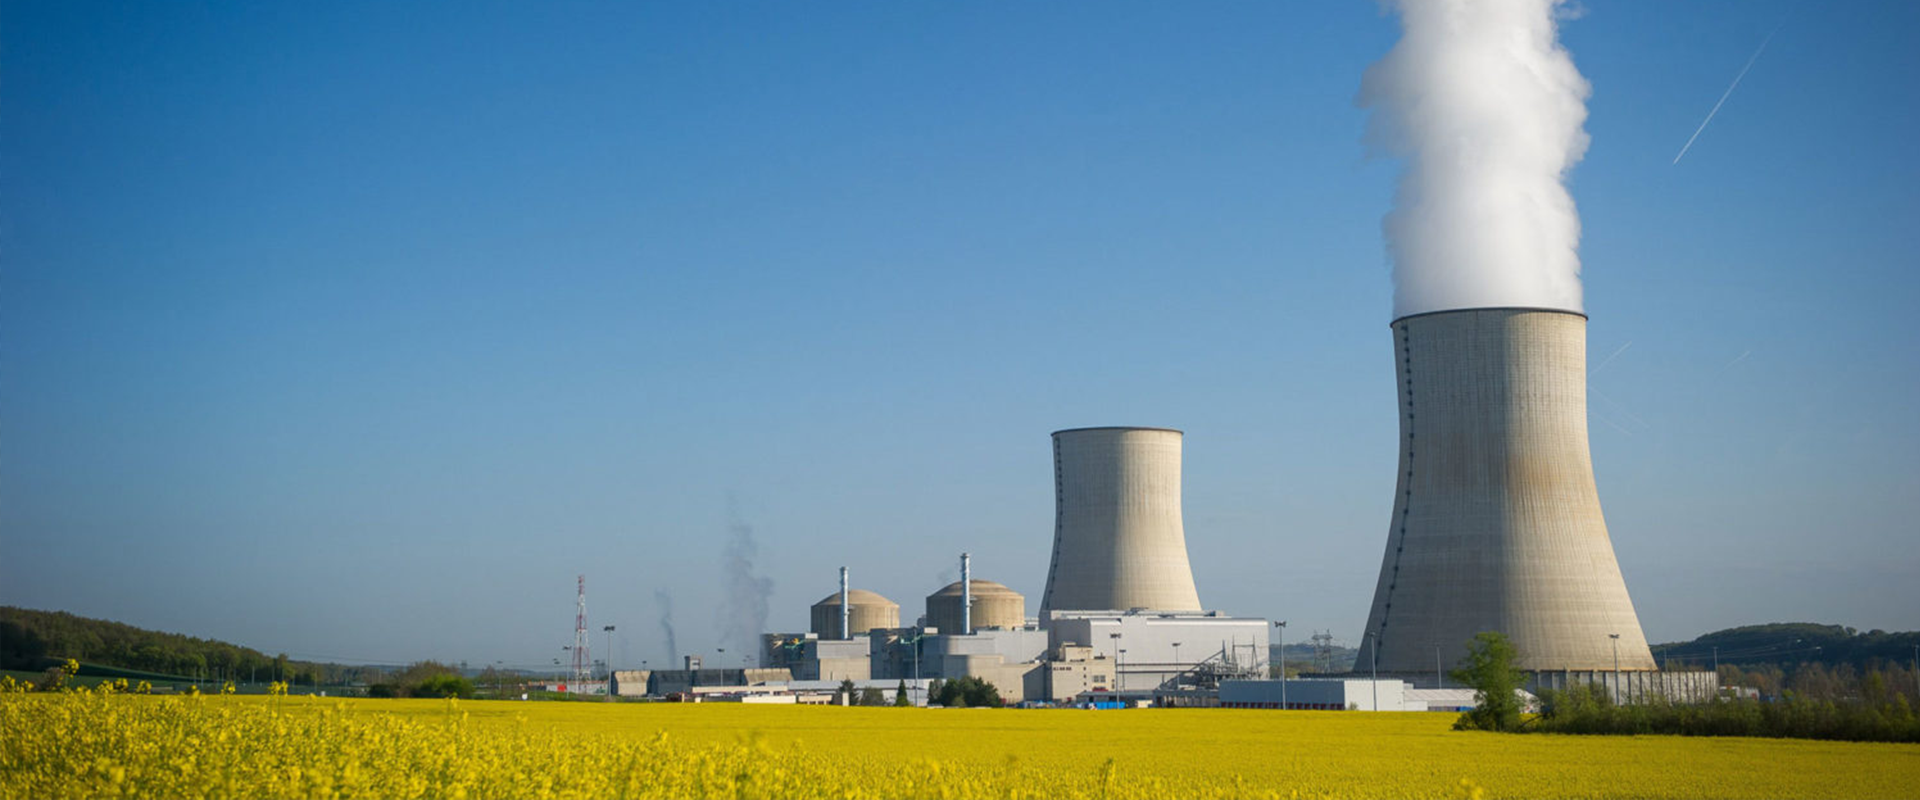 Nuclear Power|Should Australia look at replacing our old coal-fired power stations with nuclear power plants?